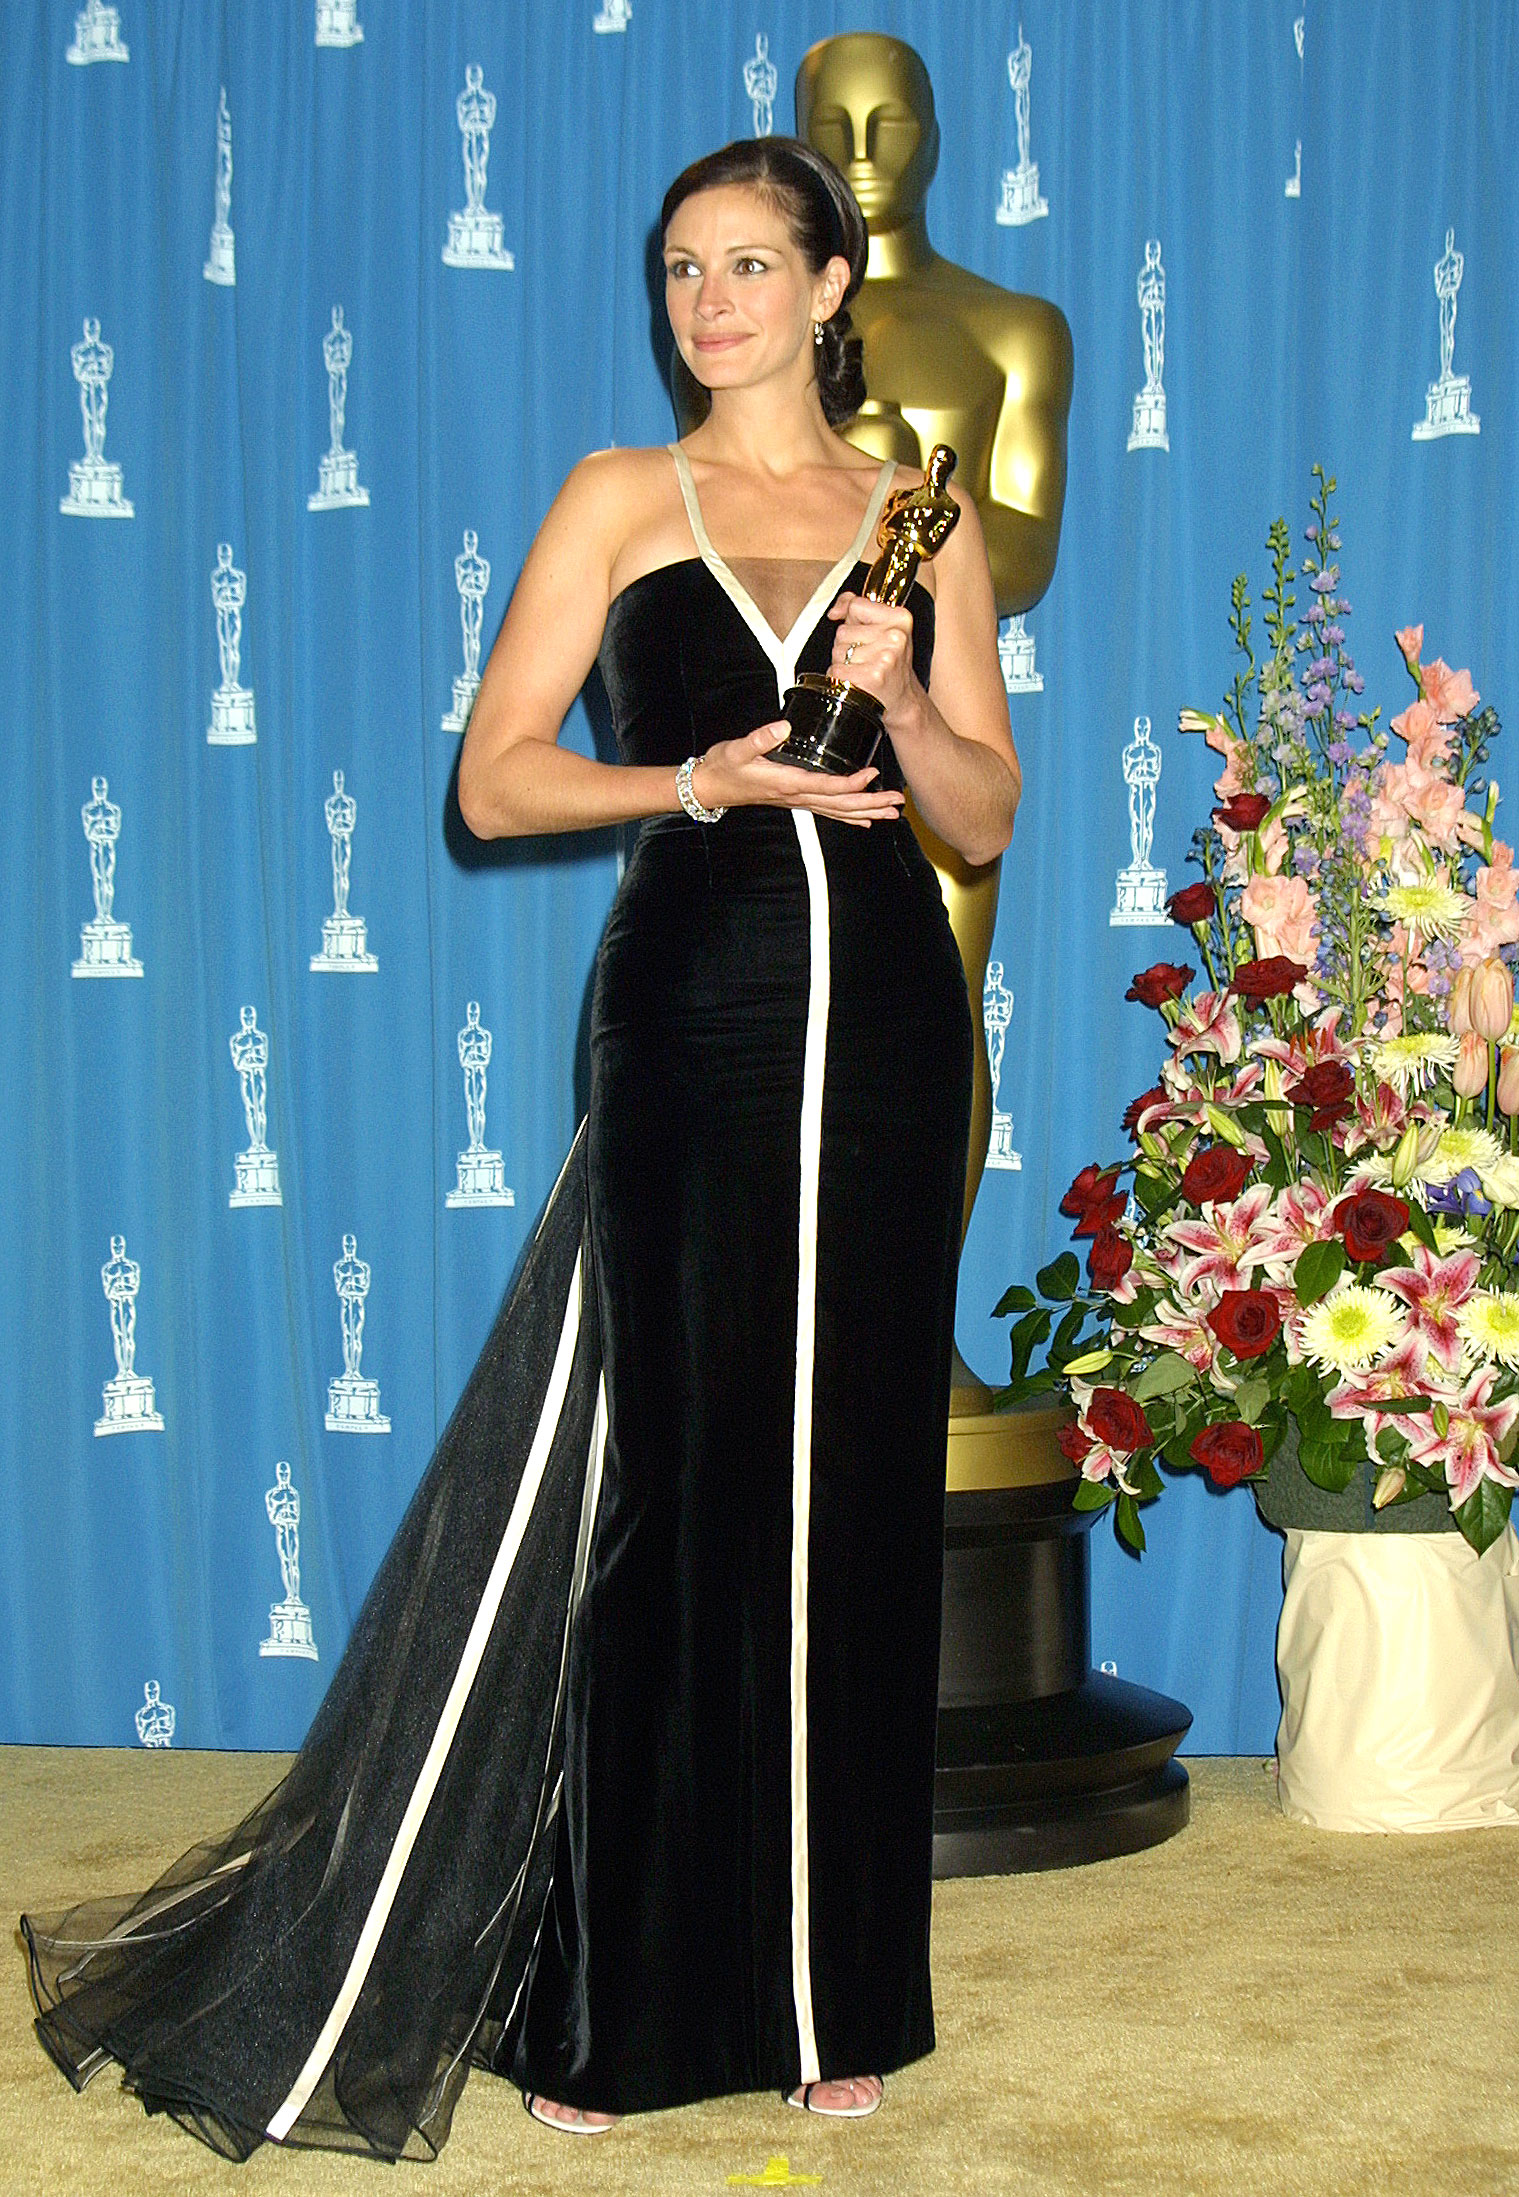 Julia-Roberts-9 - Taking home a Best Actress Oscar for her role in Erin Brockovich at the 2001 ceremony, she wowed in a vintage Valentino gown from the fashion house's 1982 collection.